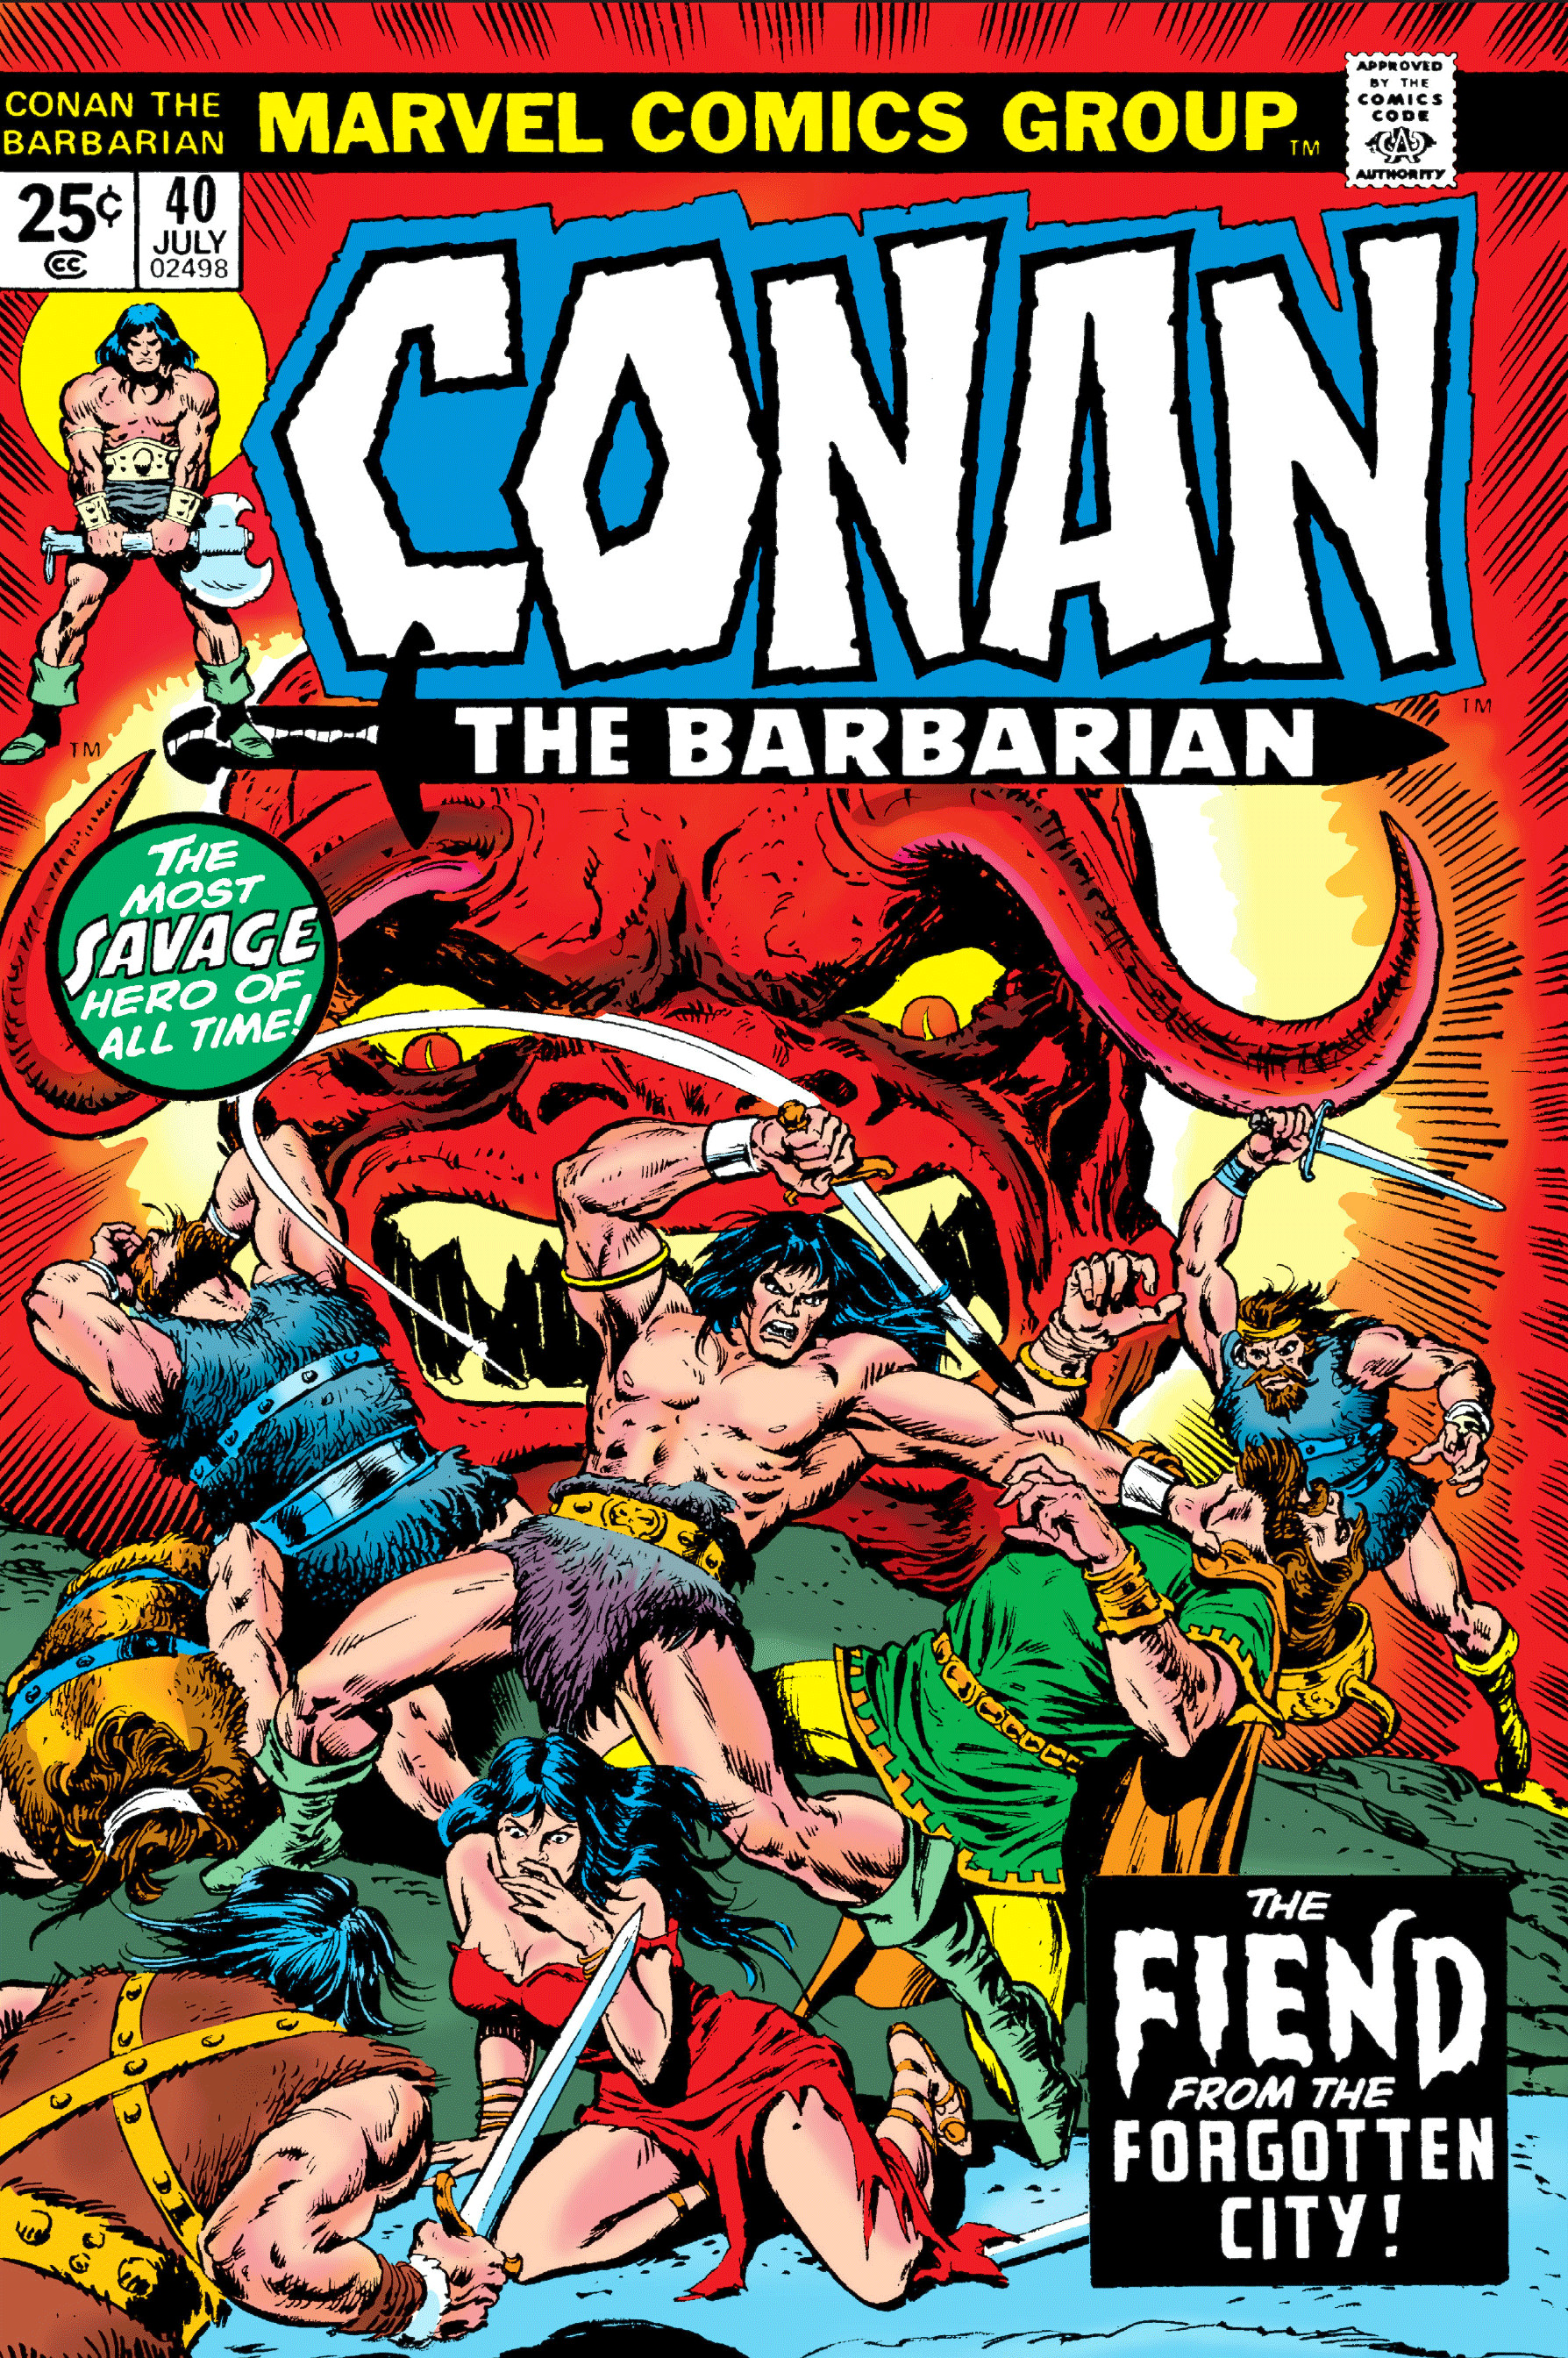 Conan the Barbarian Vol 1 40